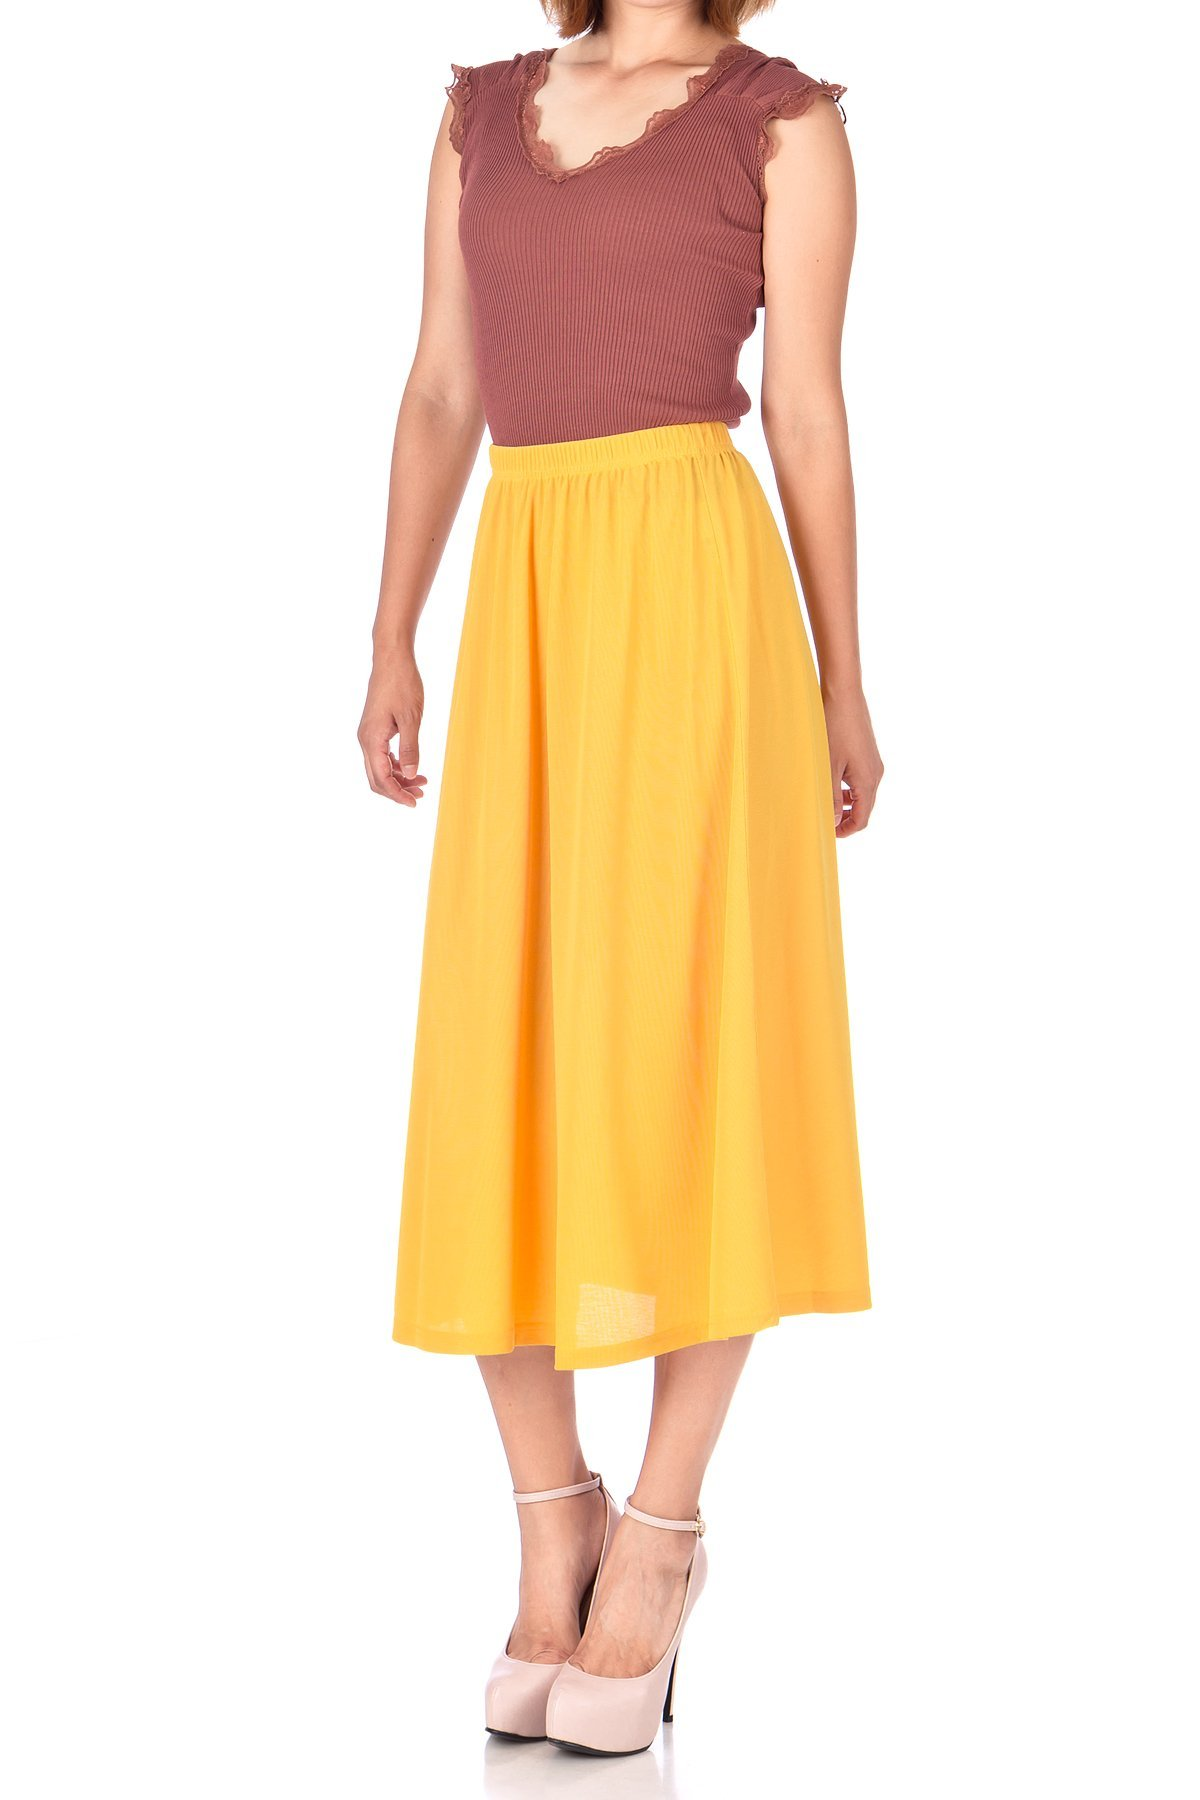 Brilliant Elastic Waist Full Flared Long Skirt Yellow 02